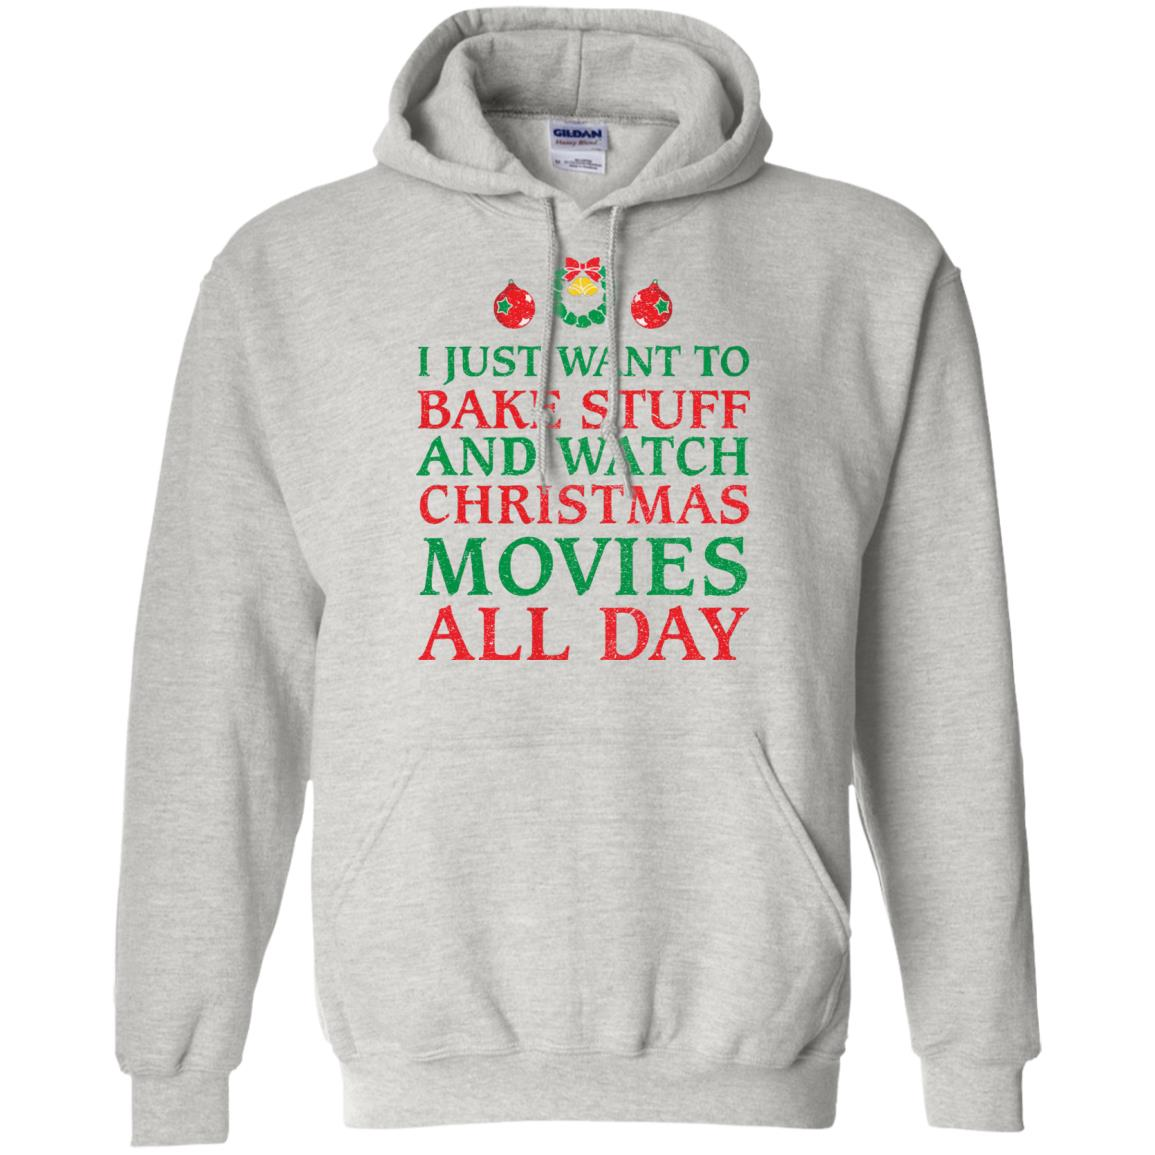 image 2698 - I Just Want to Bake Stuff and Watch Christmas Movie All Day Sweater, Ugly Sweatshirts